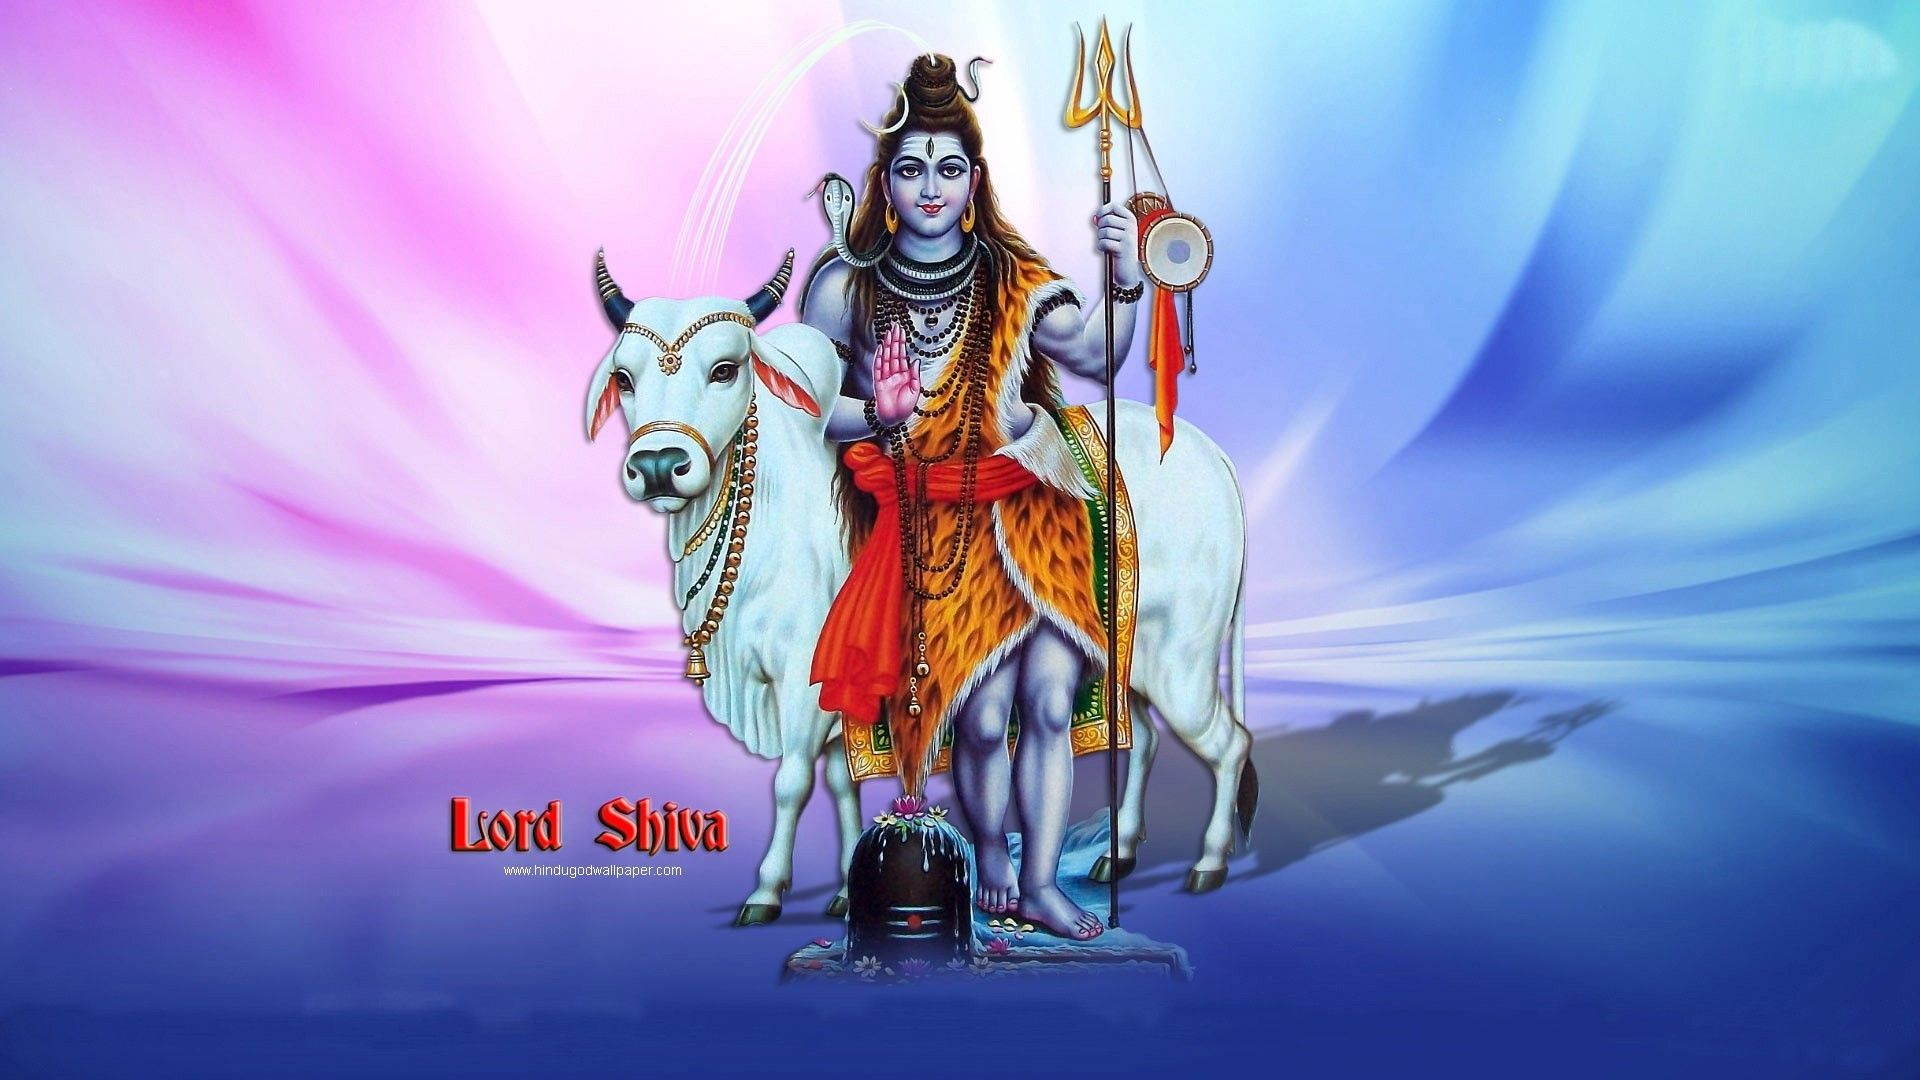 1920x1080 Shiva Hd Wallpapers 1080p Pictures Images Hd Lord Shiva Hd Wallpaper Shiva Wallpaper Shiva Lord Wallpapers